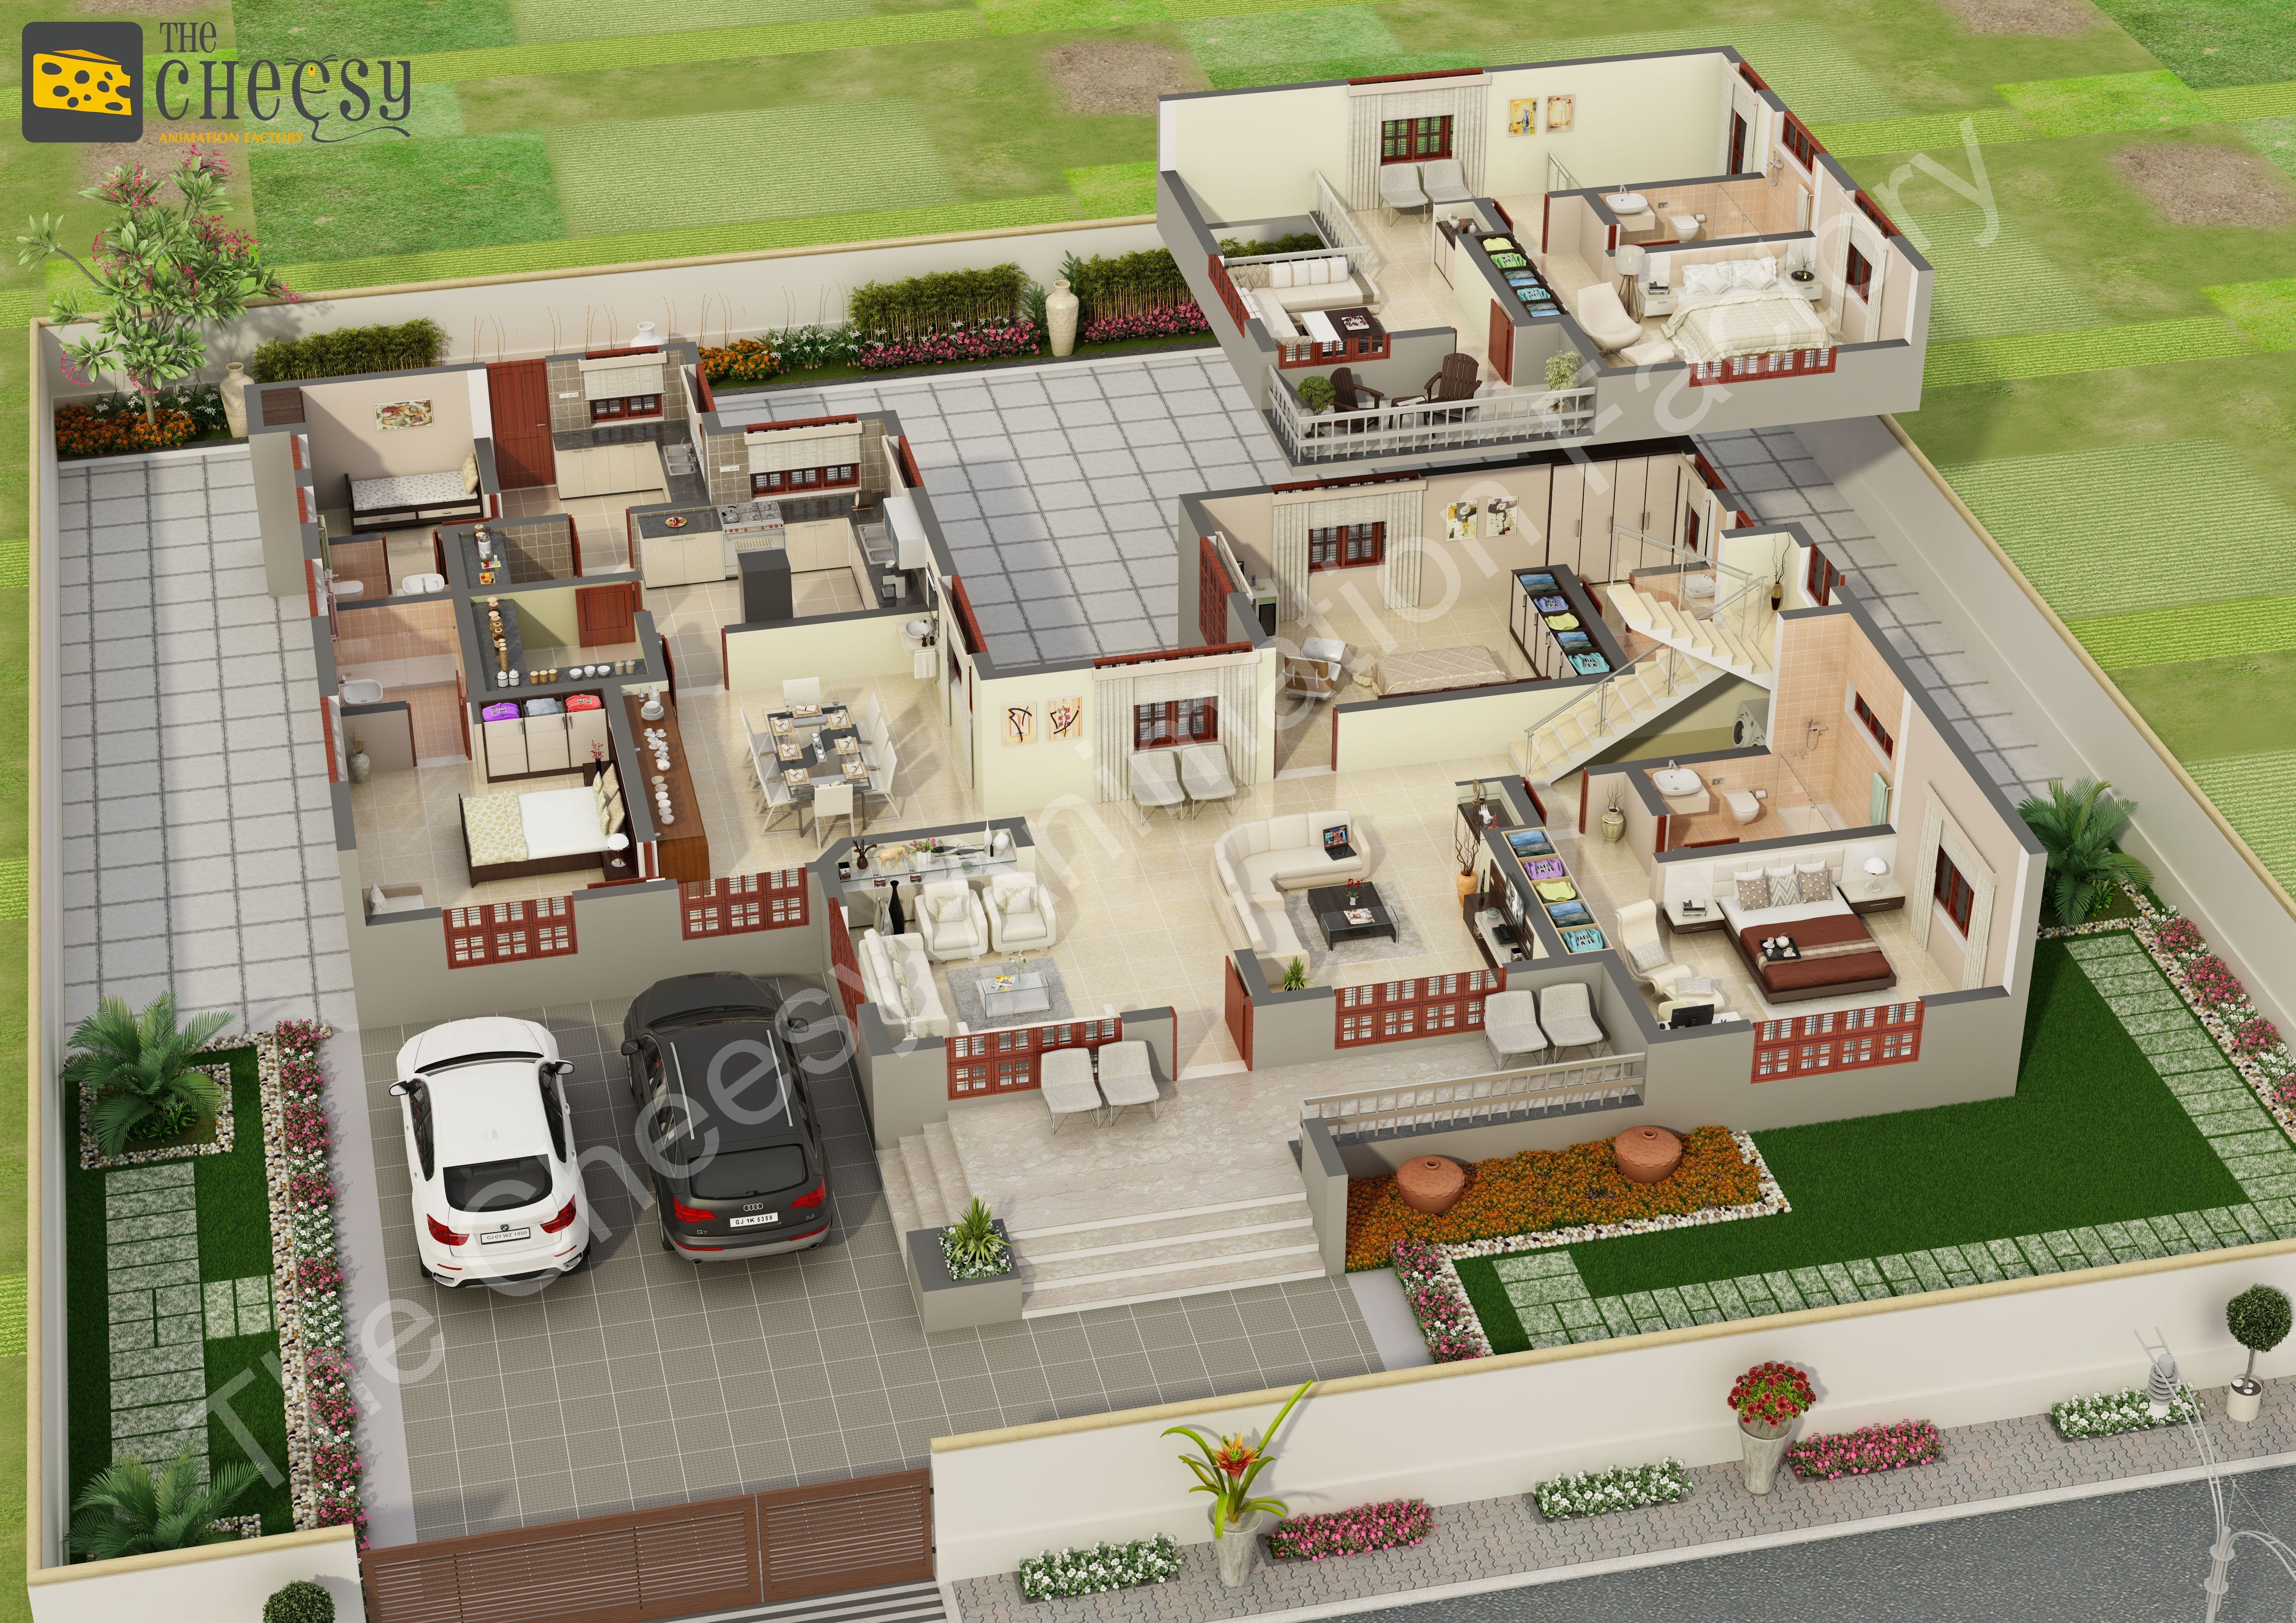 The cheesy animation studio 2d and 3d floor plan rendering for Site 3d maison